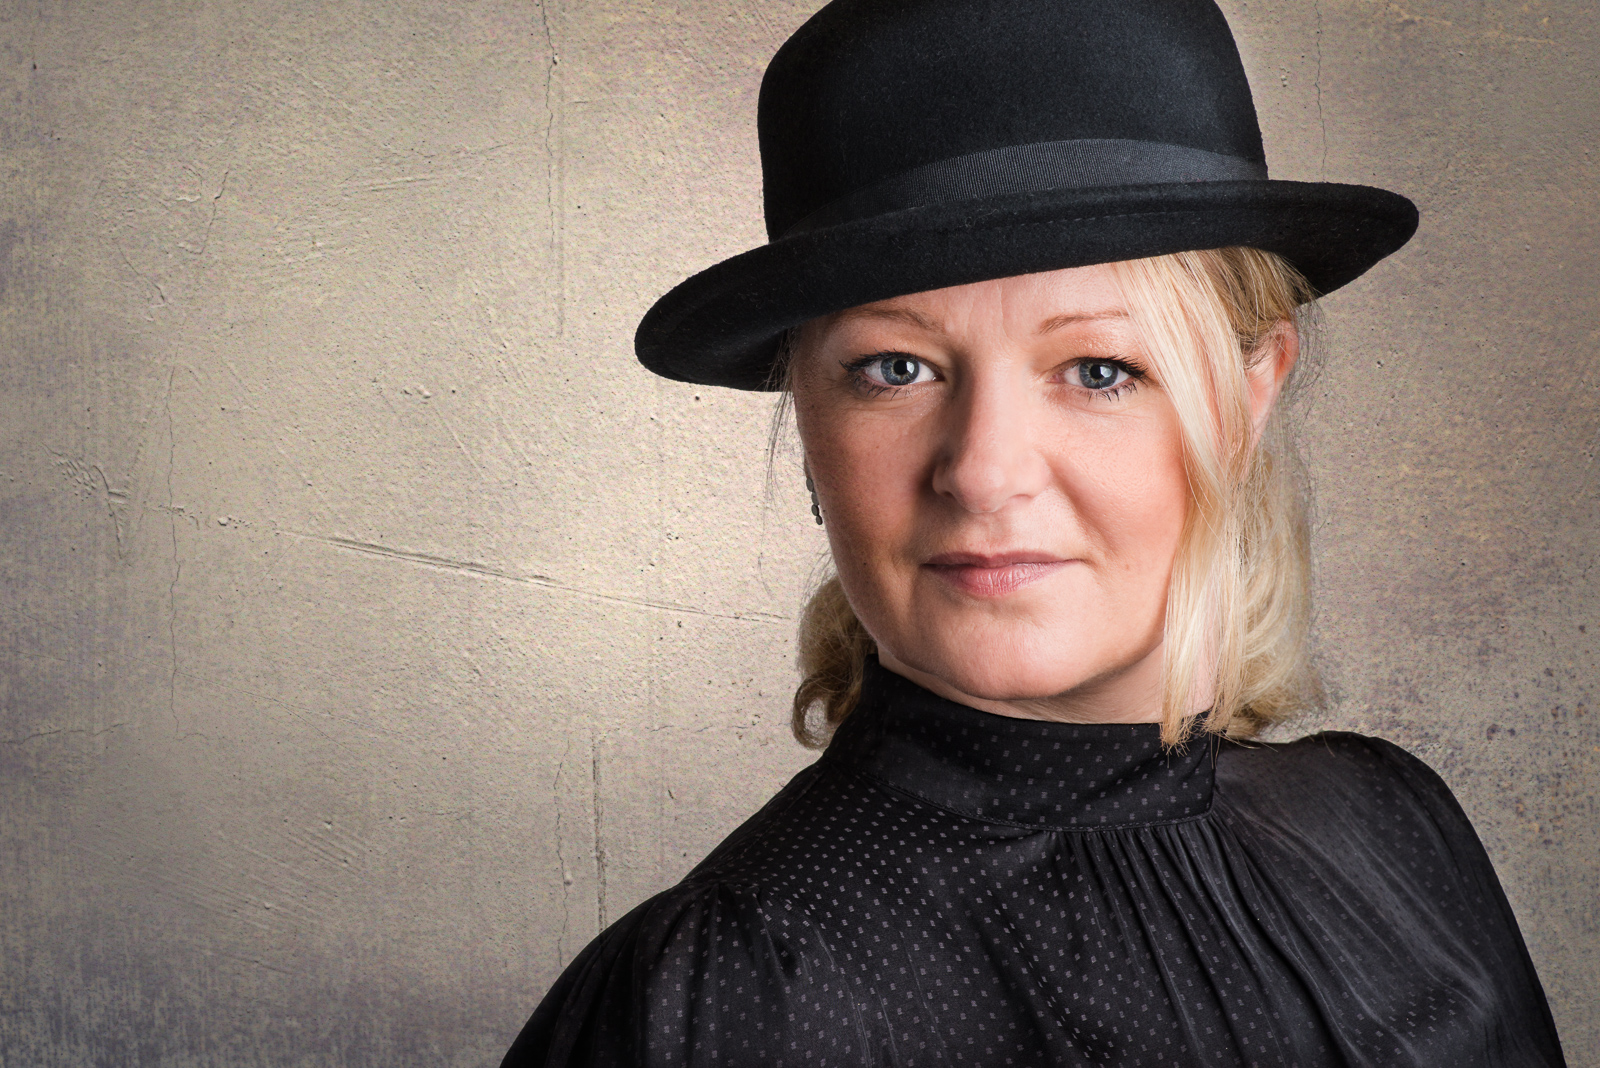 woman in bowler hat